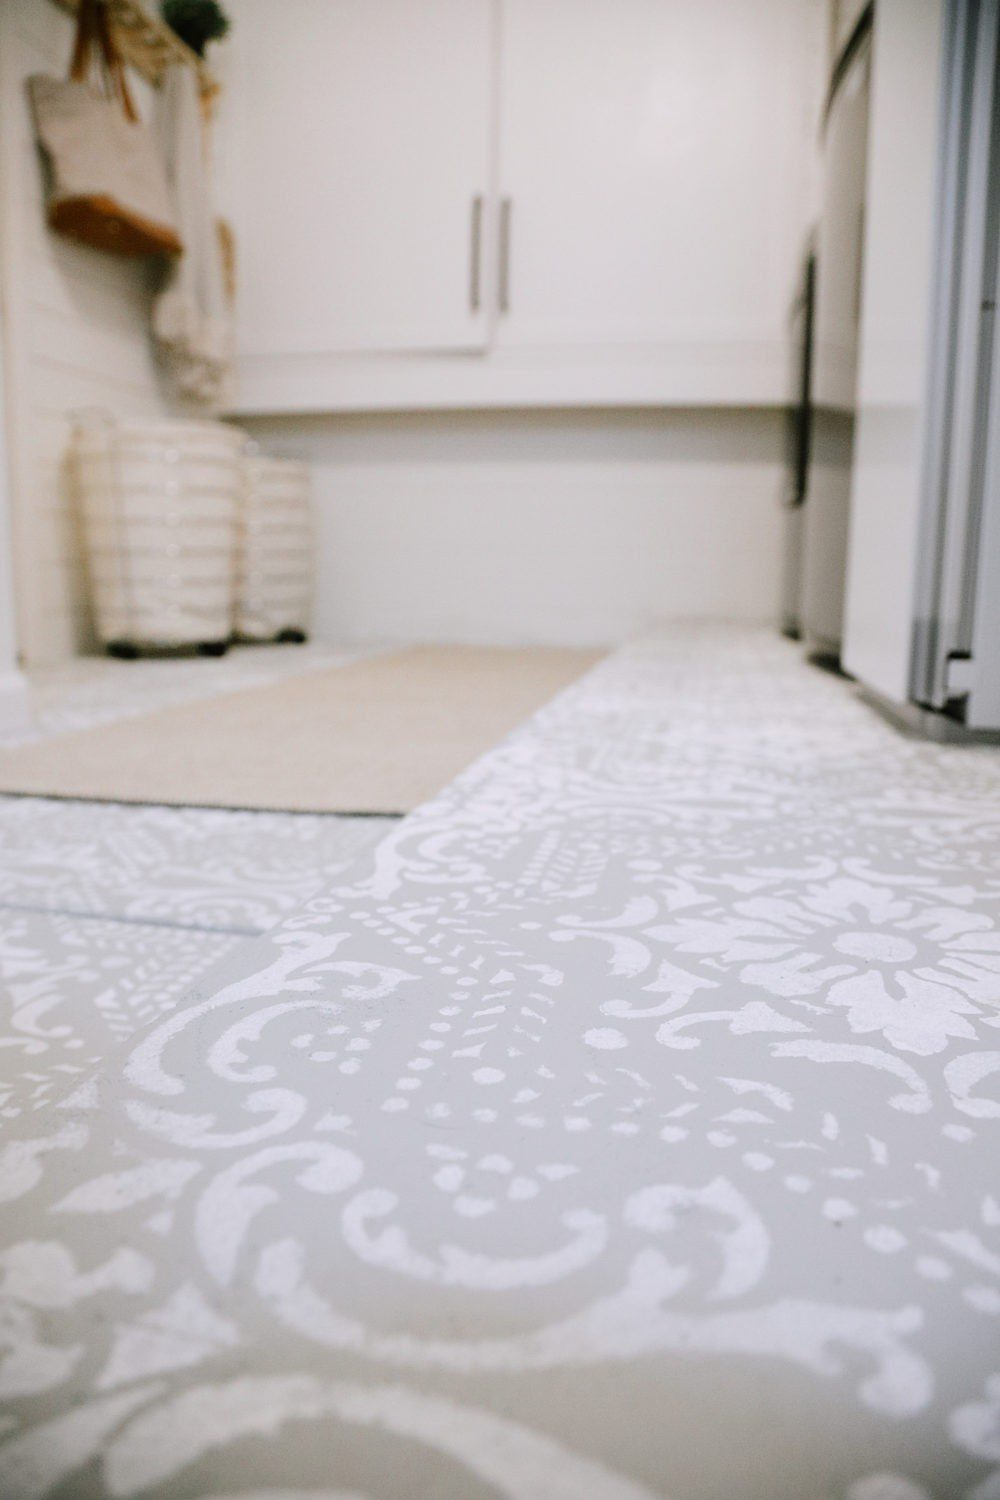 Laundry Room DIY: How to Paint a Cement Floor with Stencils